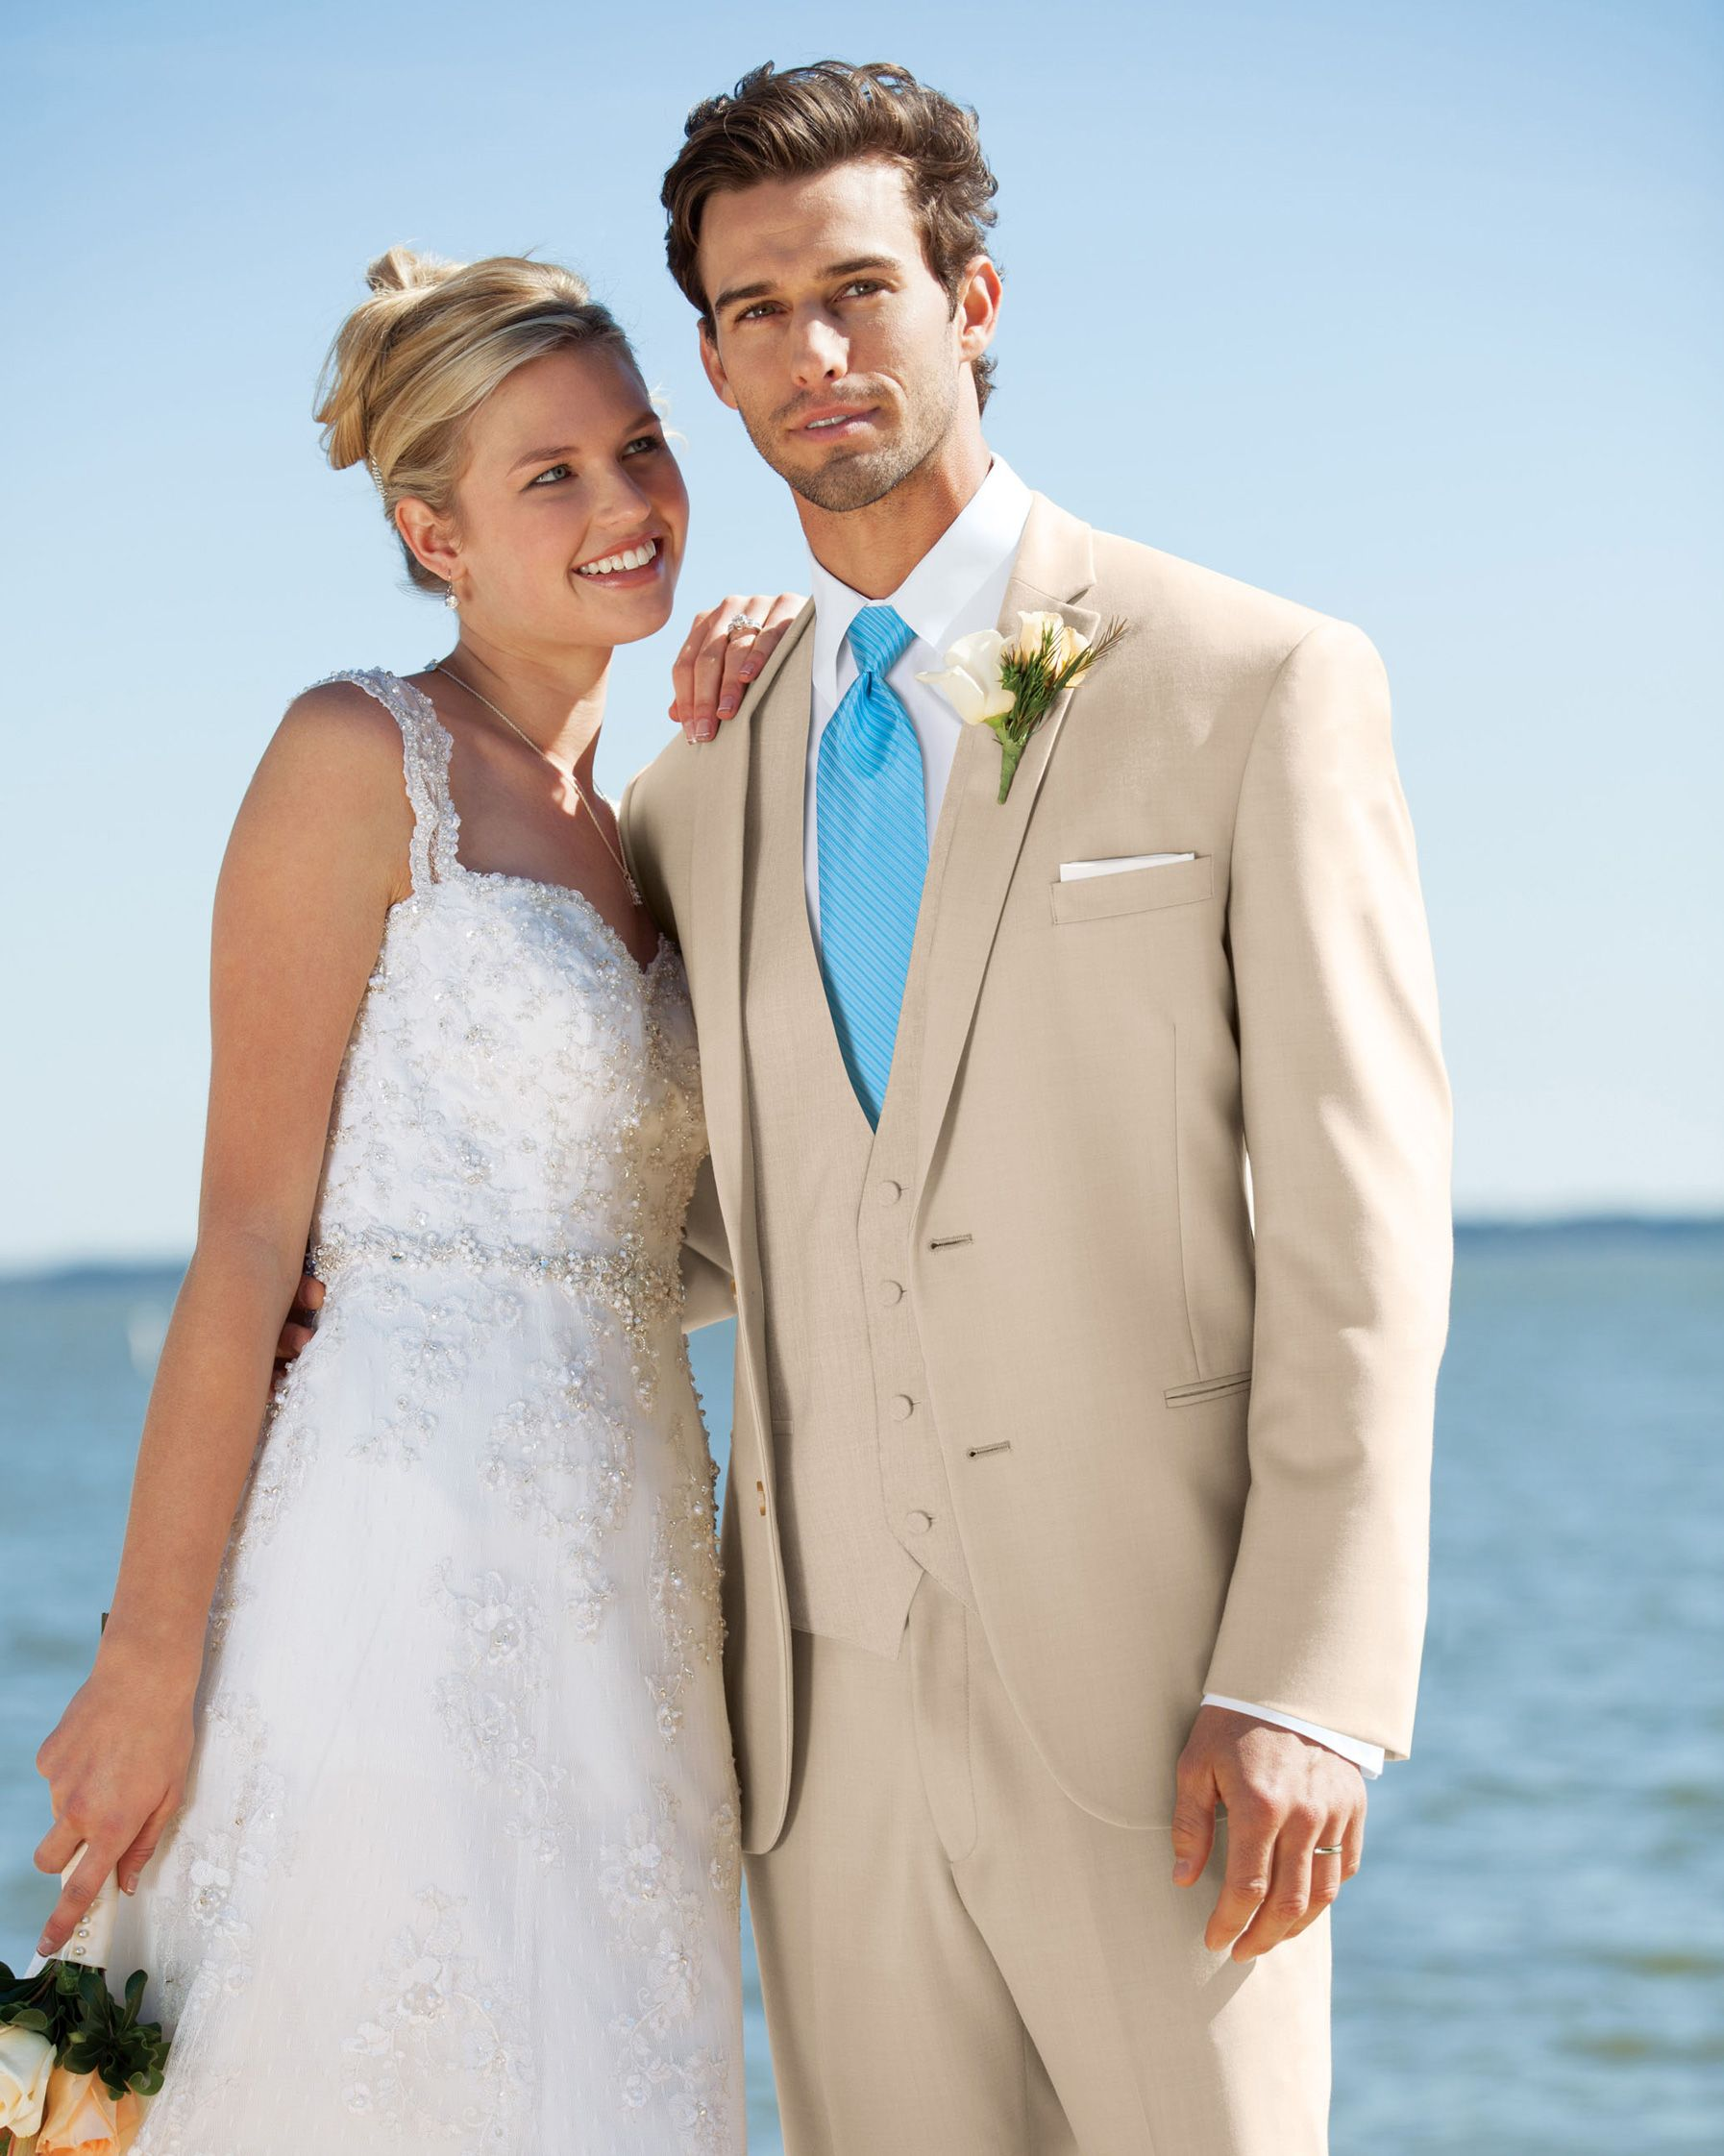 Tan Wedding Tuxedo Khaki Bowtie Turquoise Prom Love Suit Plaid Destination